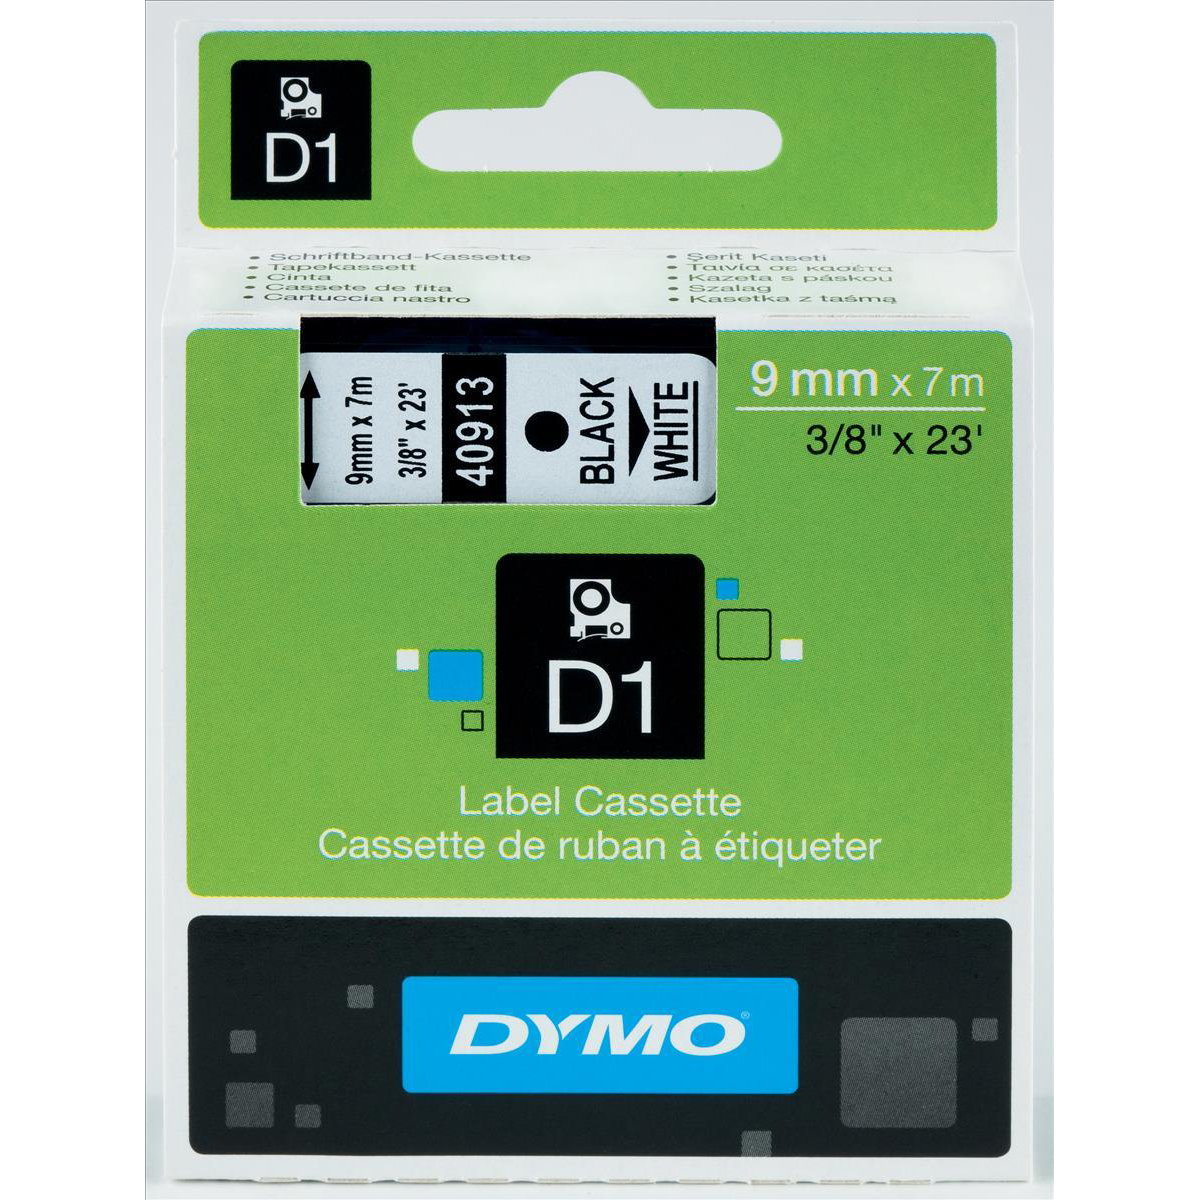 Technology Office Machine Supplies Labelmaker Tapes Brother Label Tape Tze M951 24mm Black On Silver Matt Dymo D1 For Electronic Labelmakers 9mmx7m White Ref 40913 S0720680